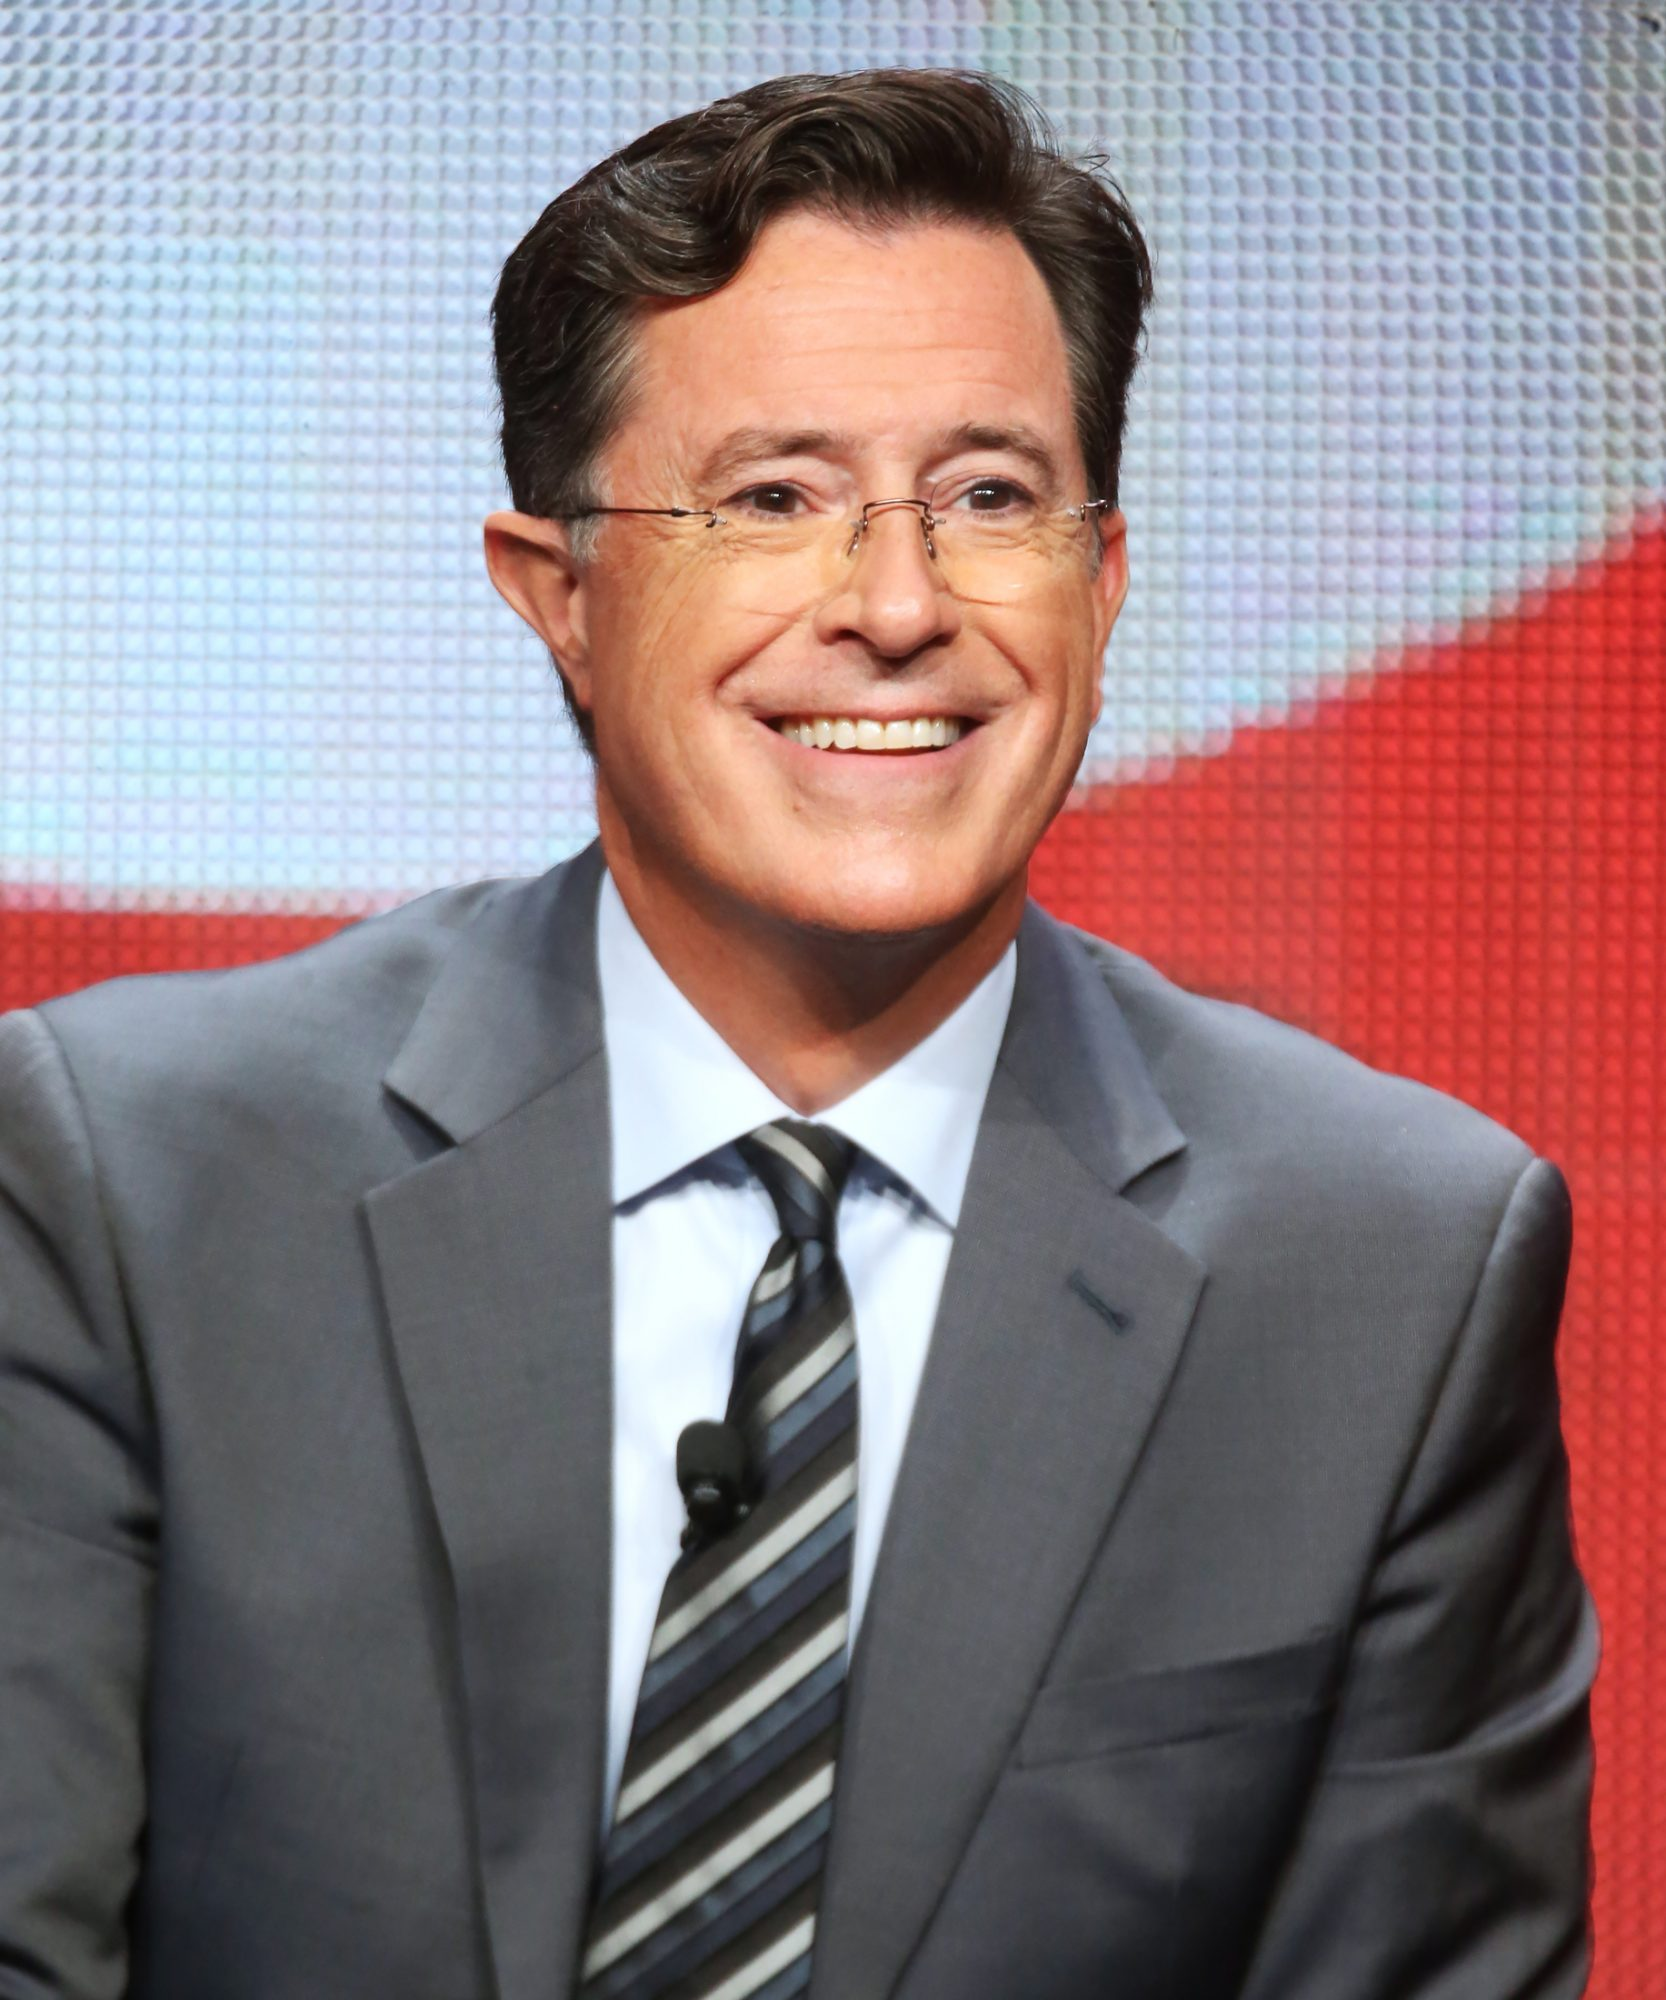 Stephen Colbert - August 10, 2015 - Lead